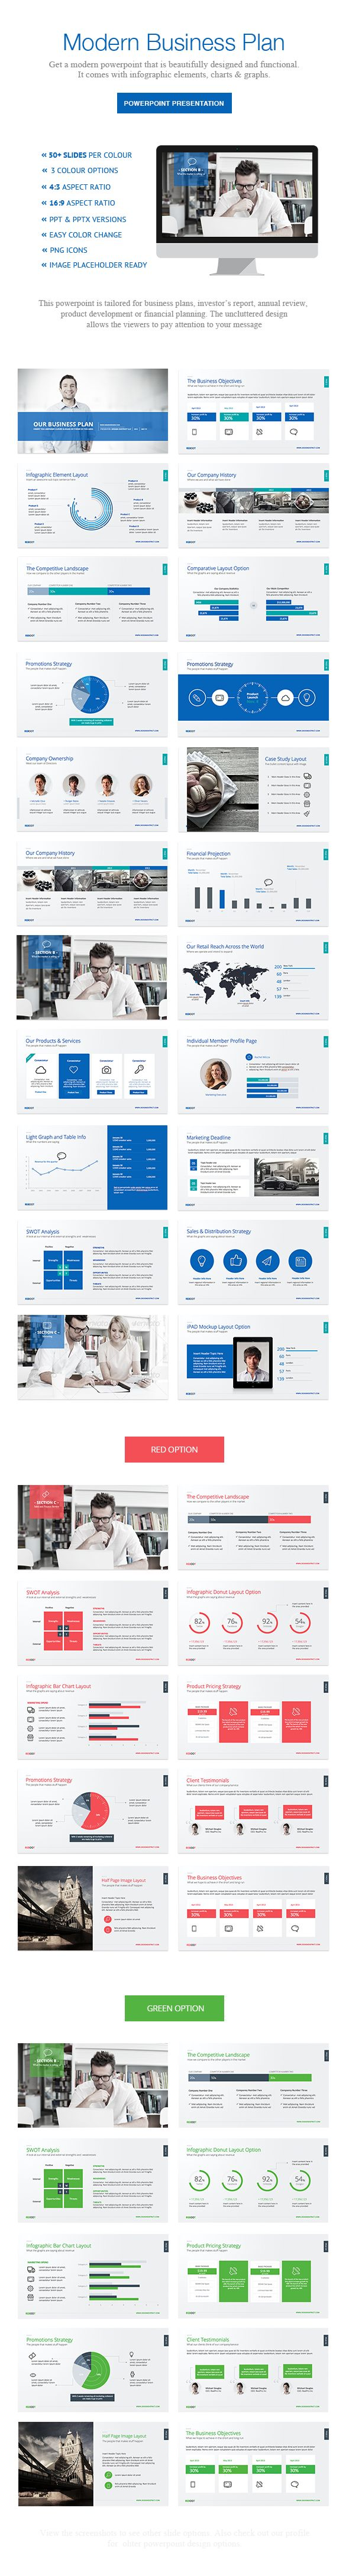 Business Plan Powerpoint on Behance